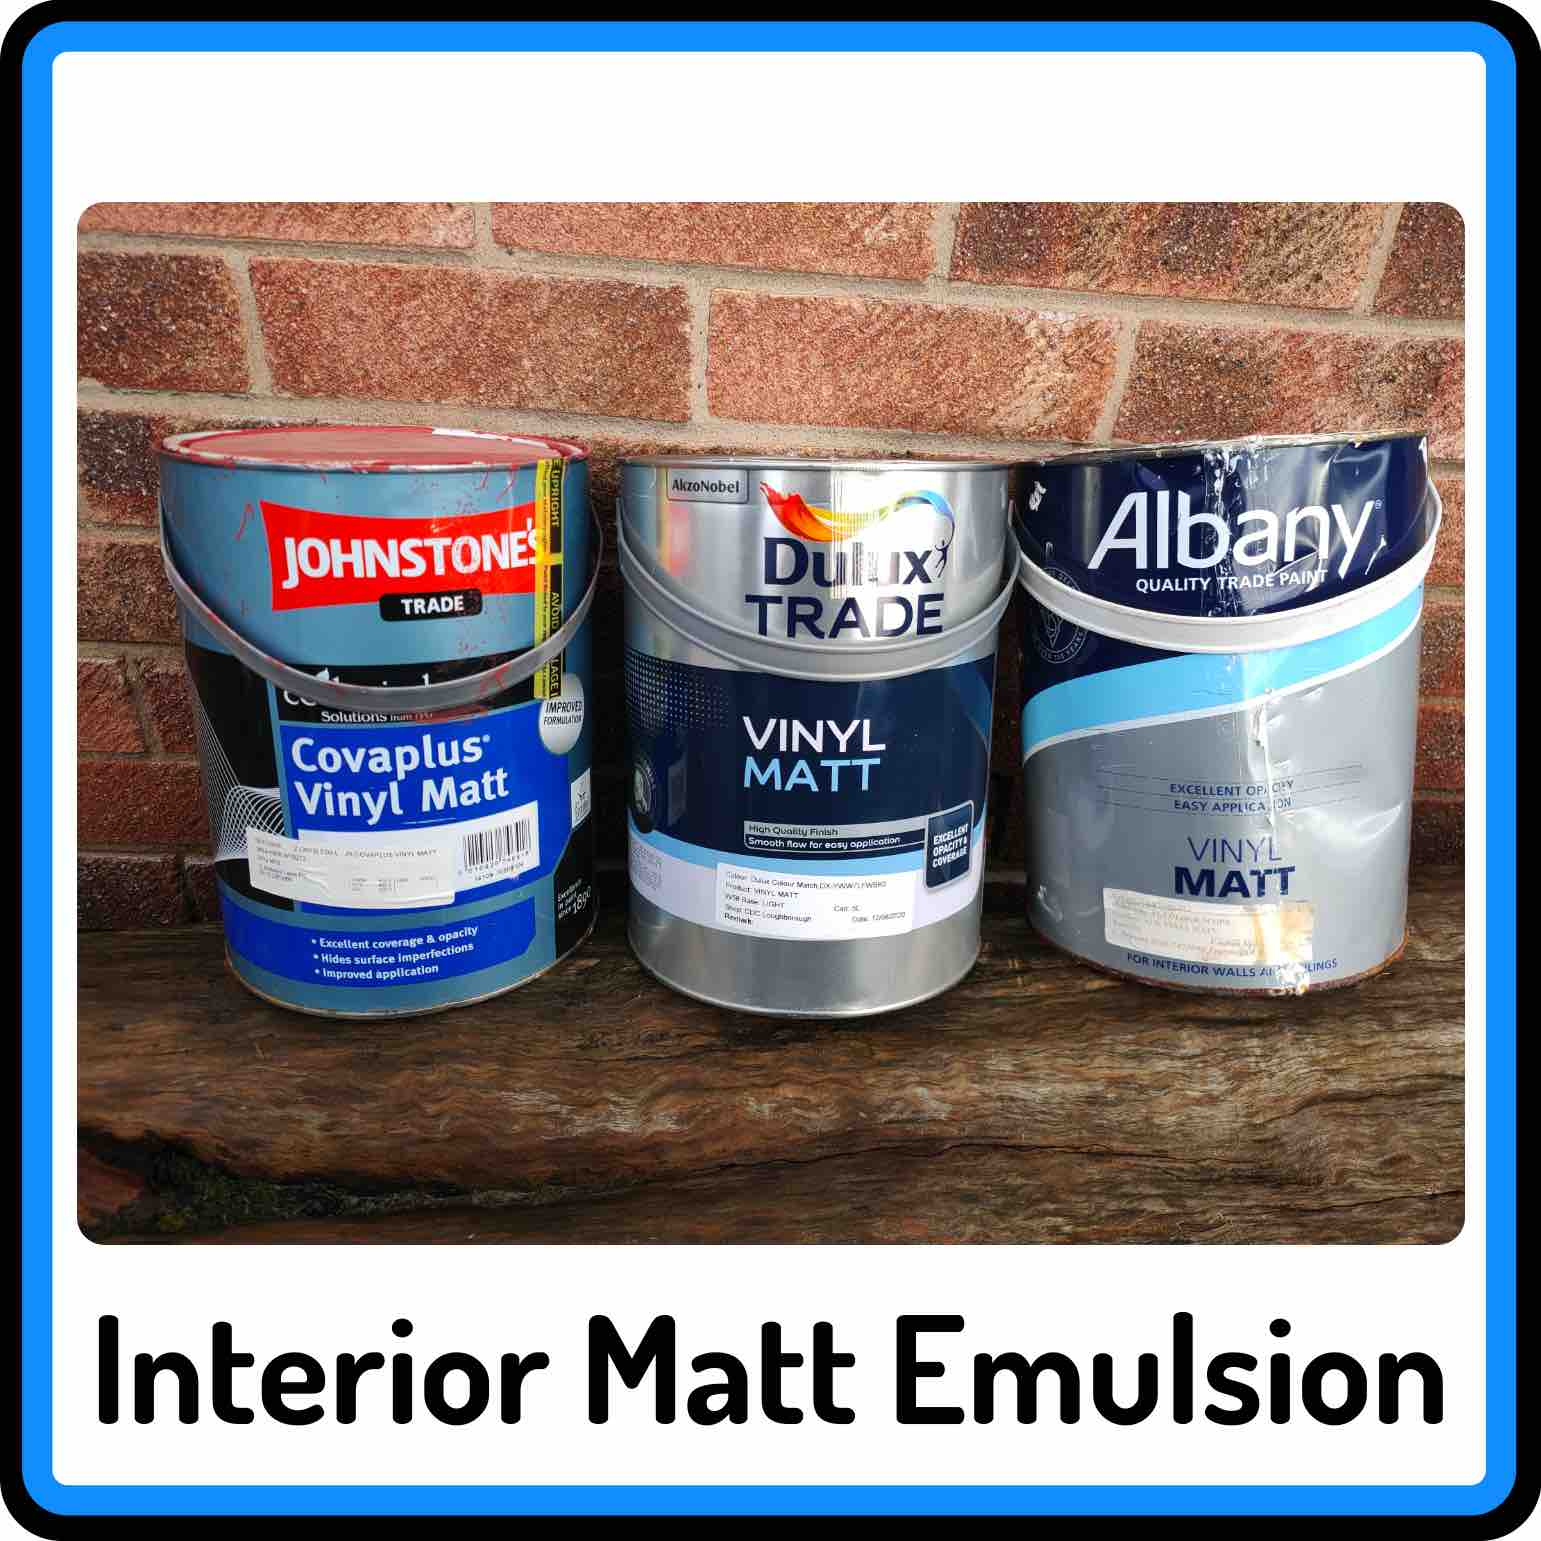 View our selection of Interior Matt Emulsion Paints